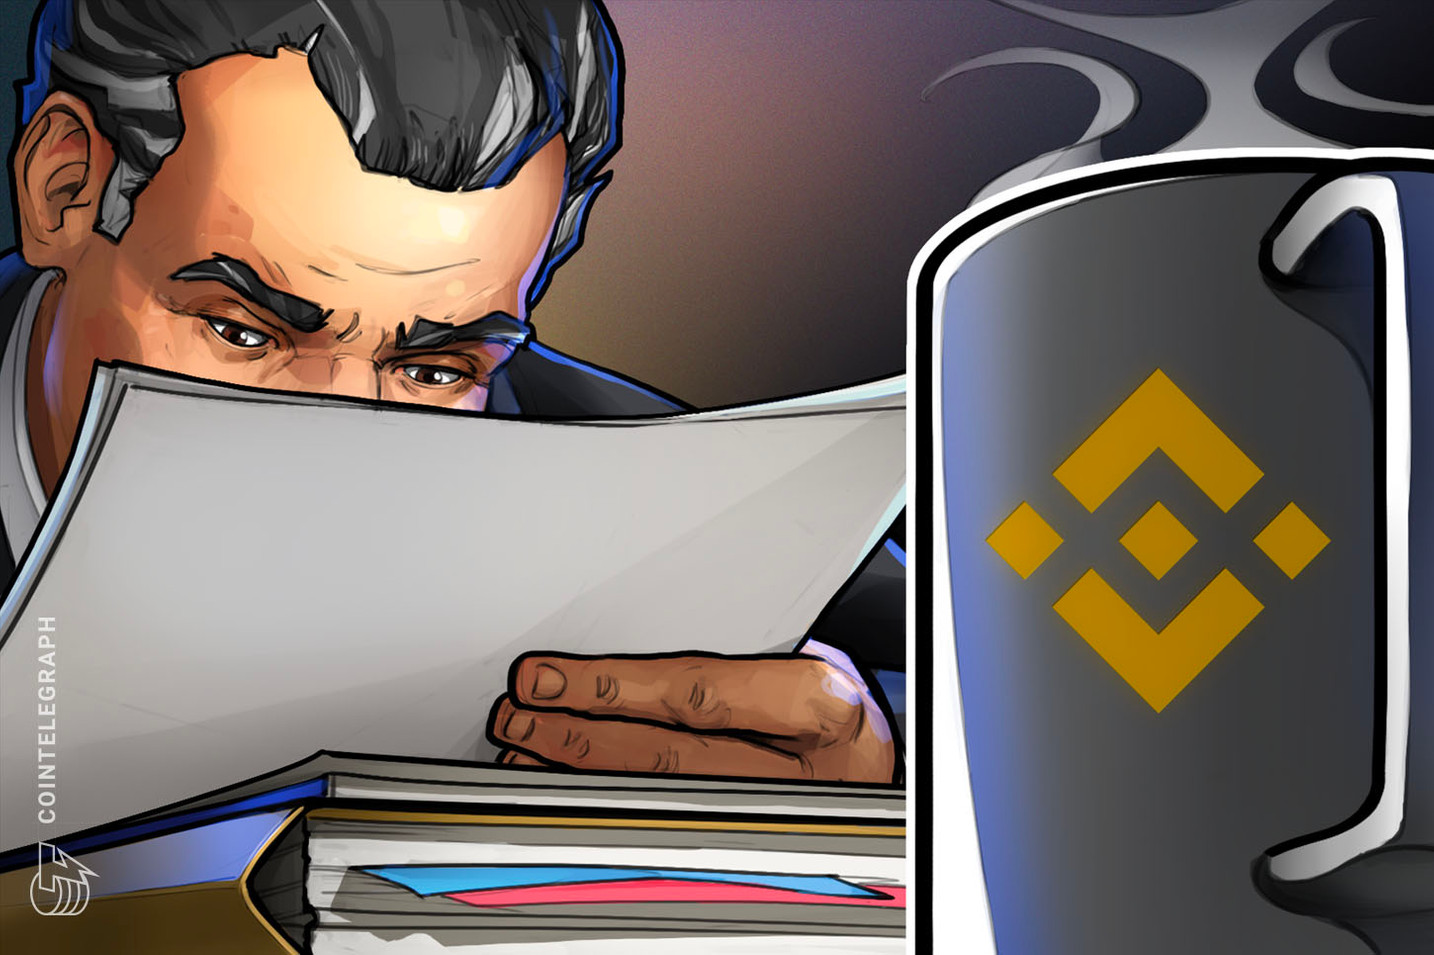 Binance hires Trump lawyer who helped put Gawker Media out of business